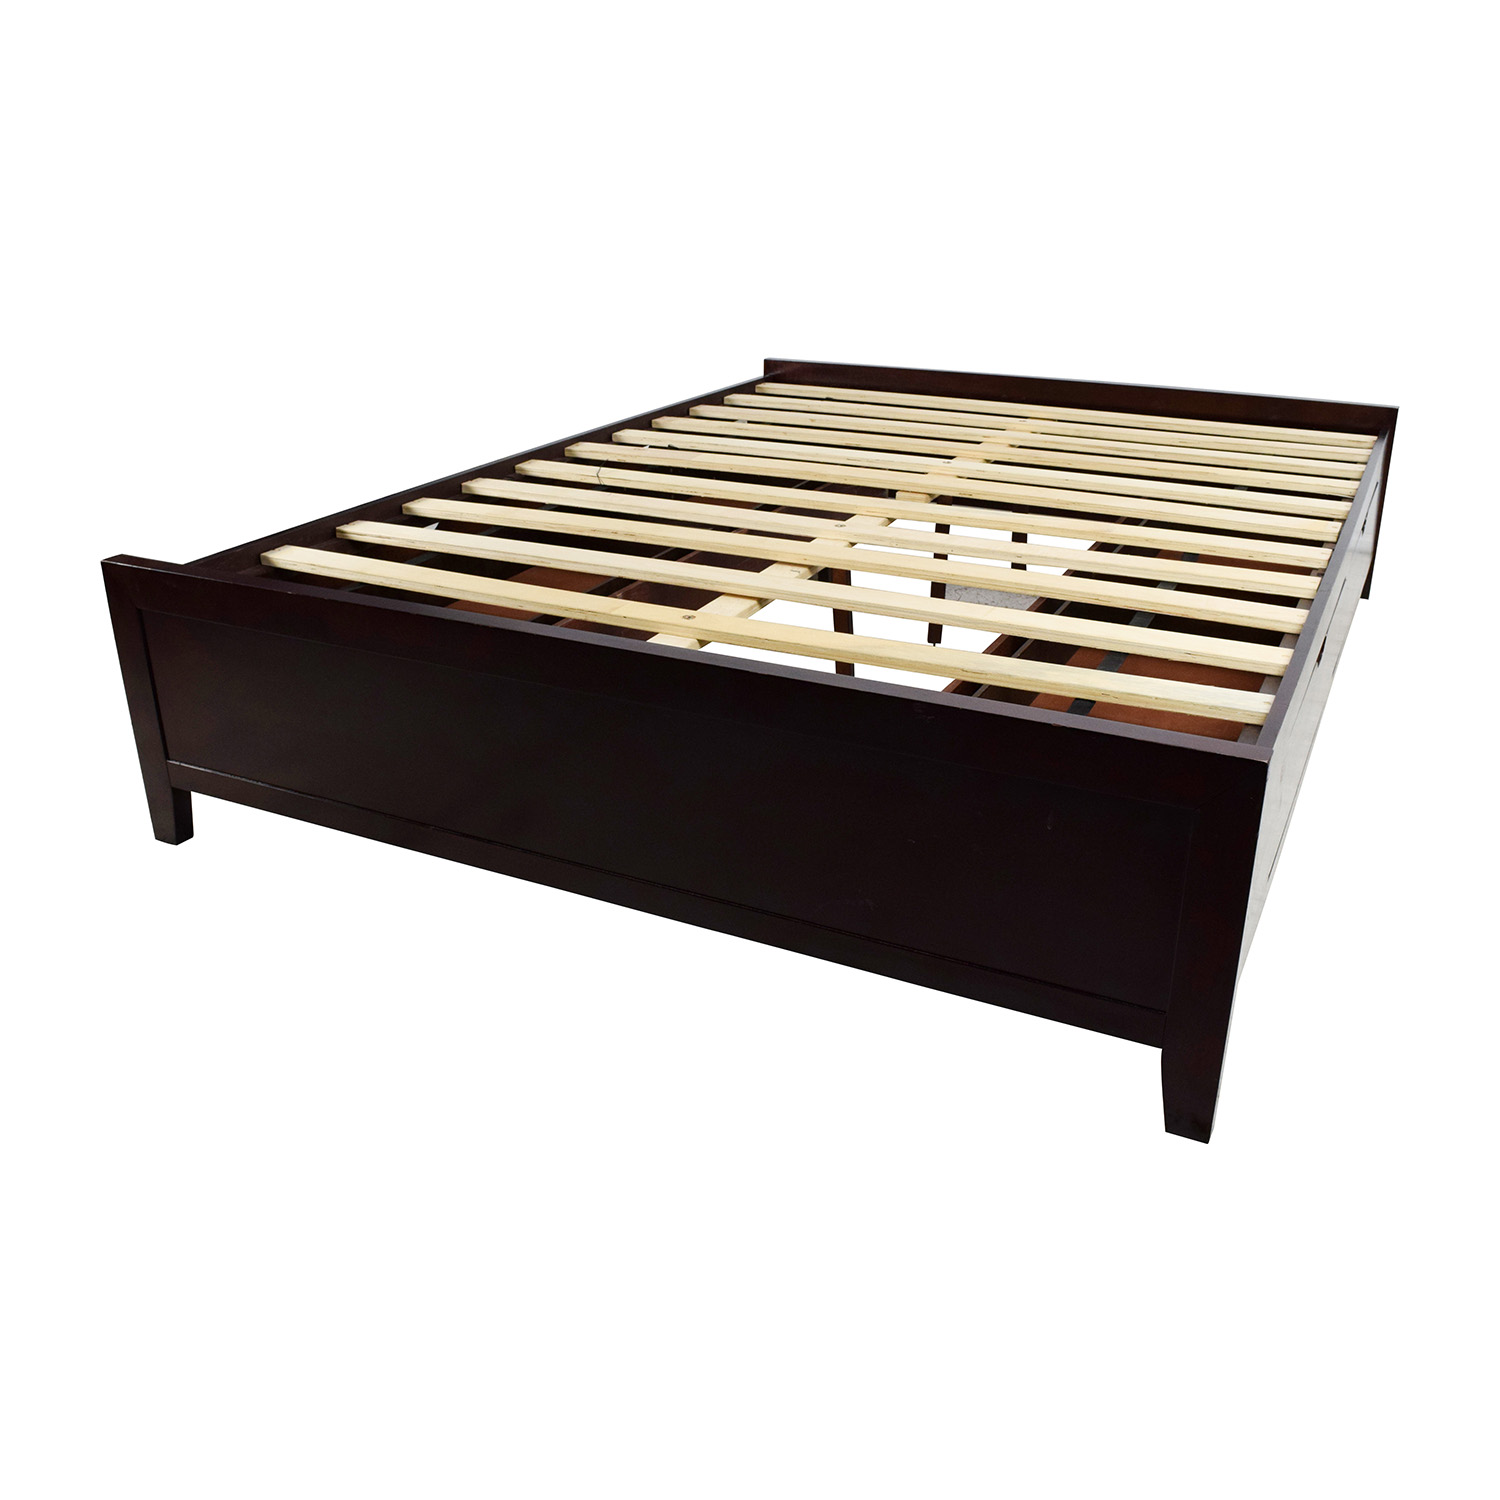 67 Off Wooden Queen Size Storage Bed Frame Beds